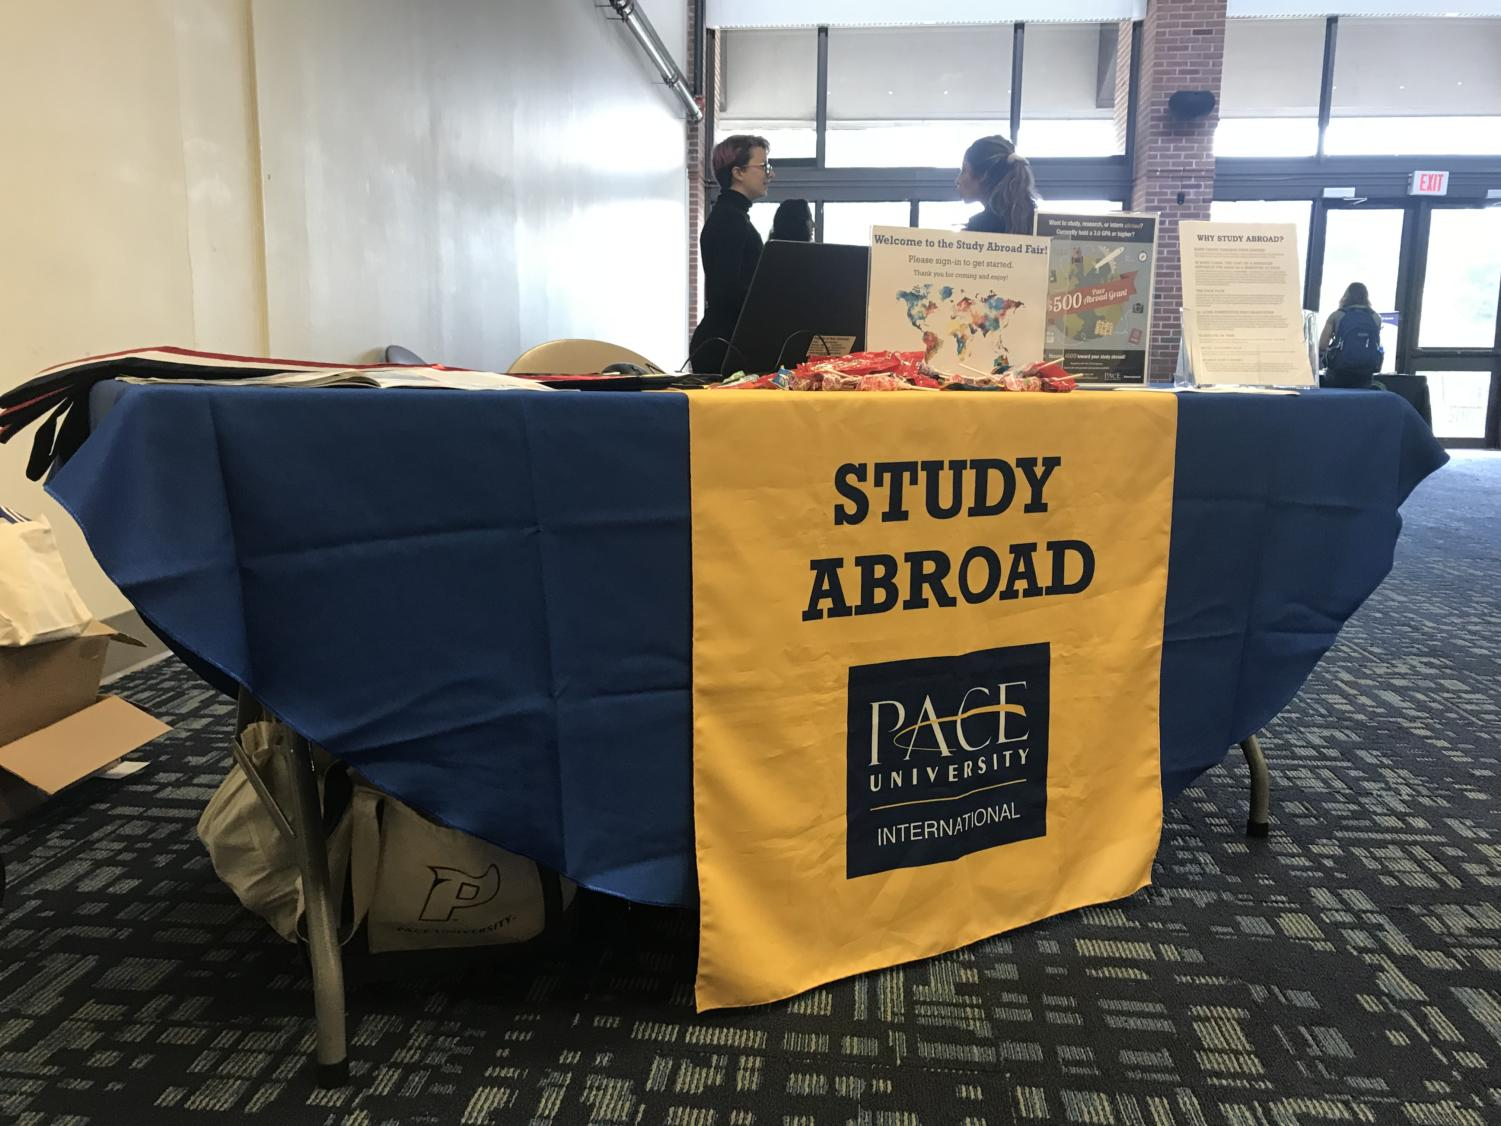 Pace's biannual Study Abroad Fair provides students international opportunities and better details about studying abroad.